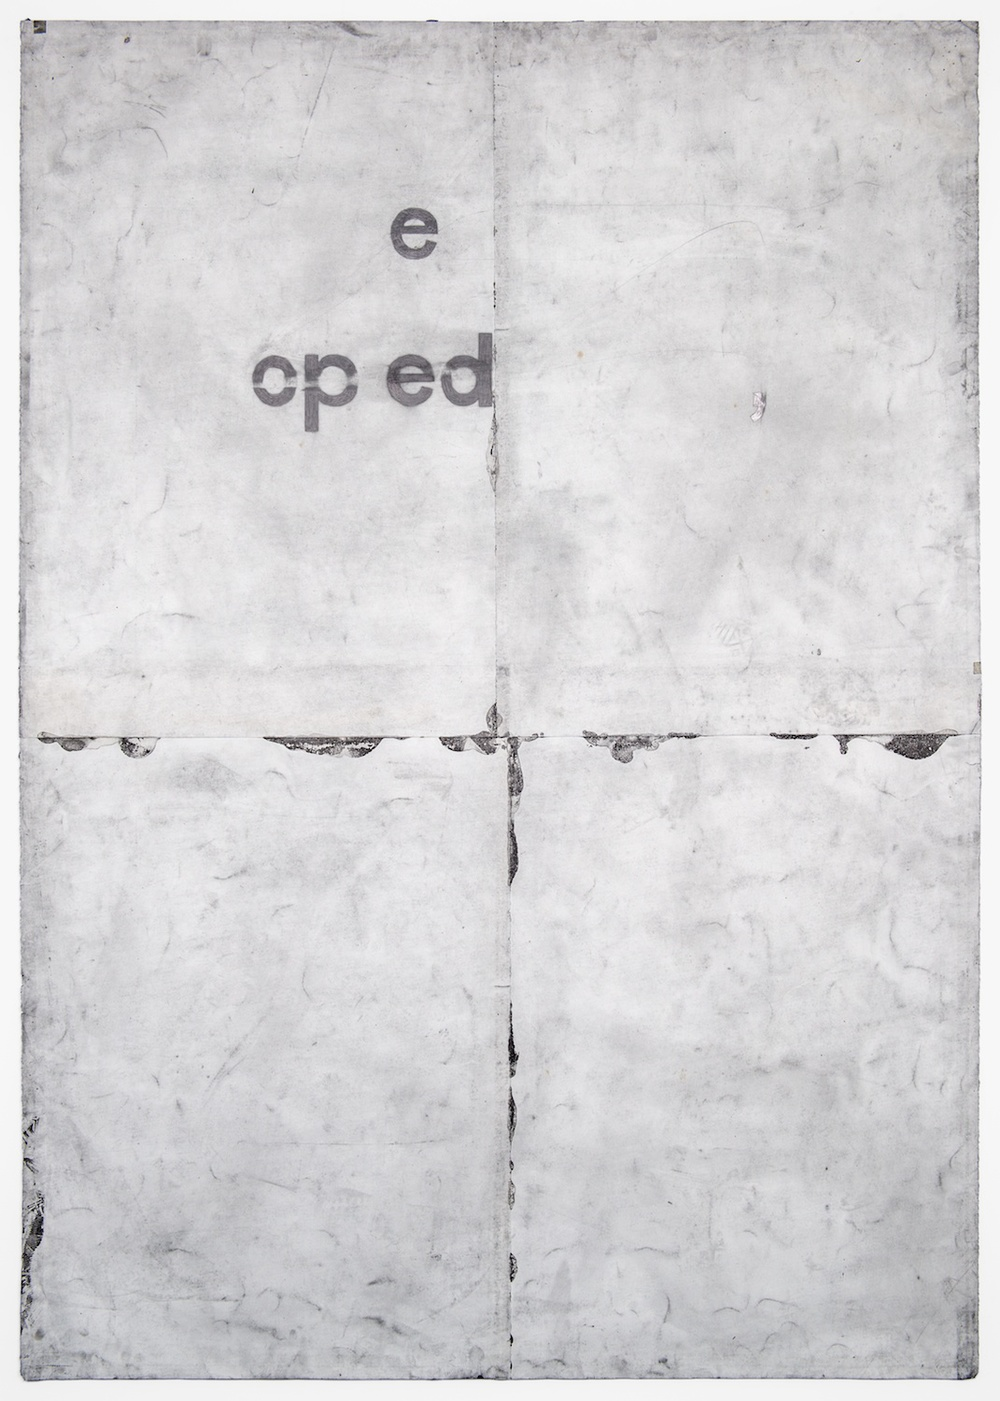 Tony Lewis  ,de po e  2011 Pencil and powdered graphite on paper 84h x 60w in TL028